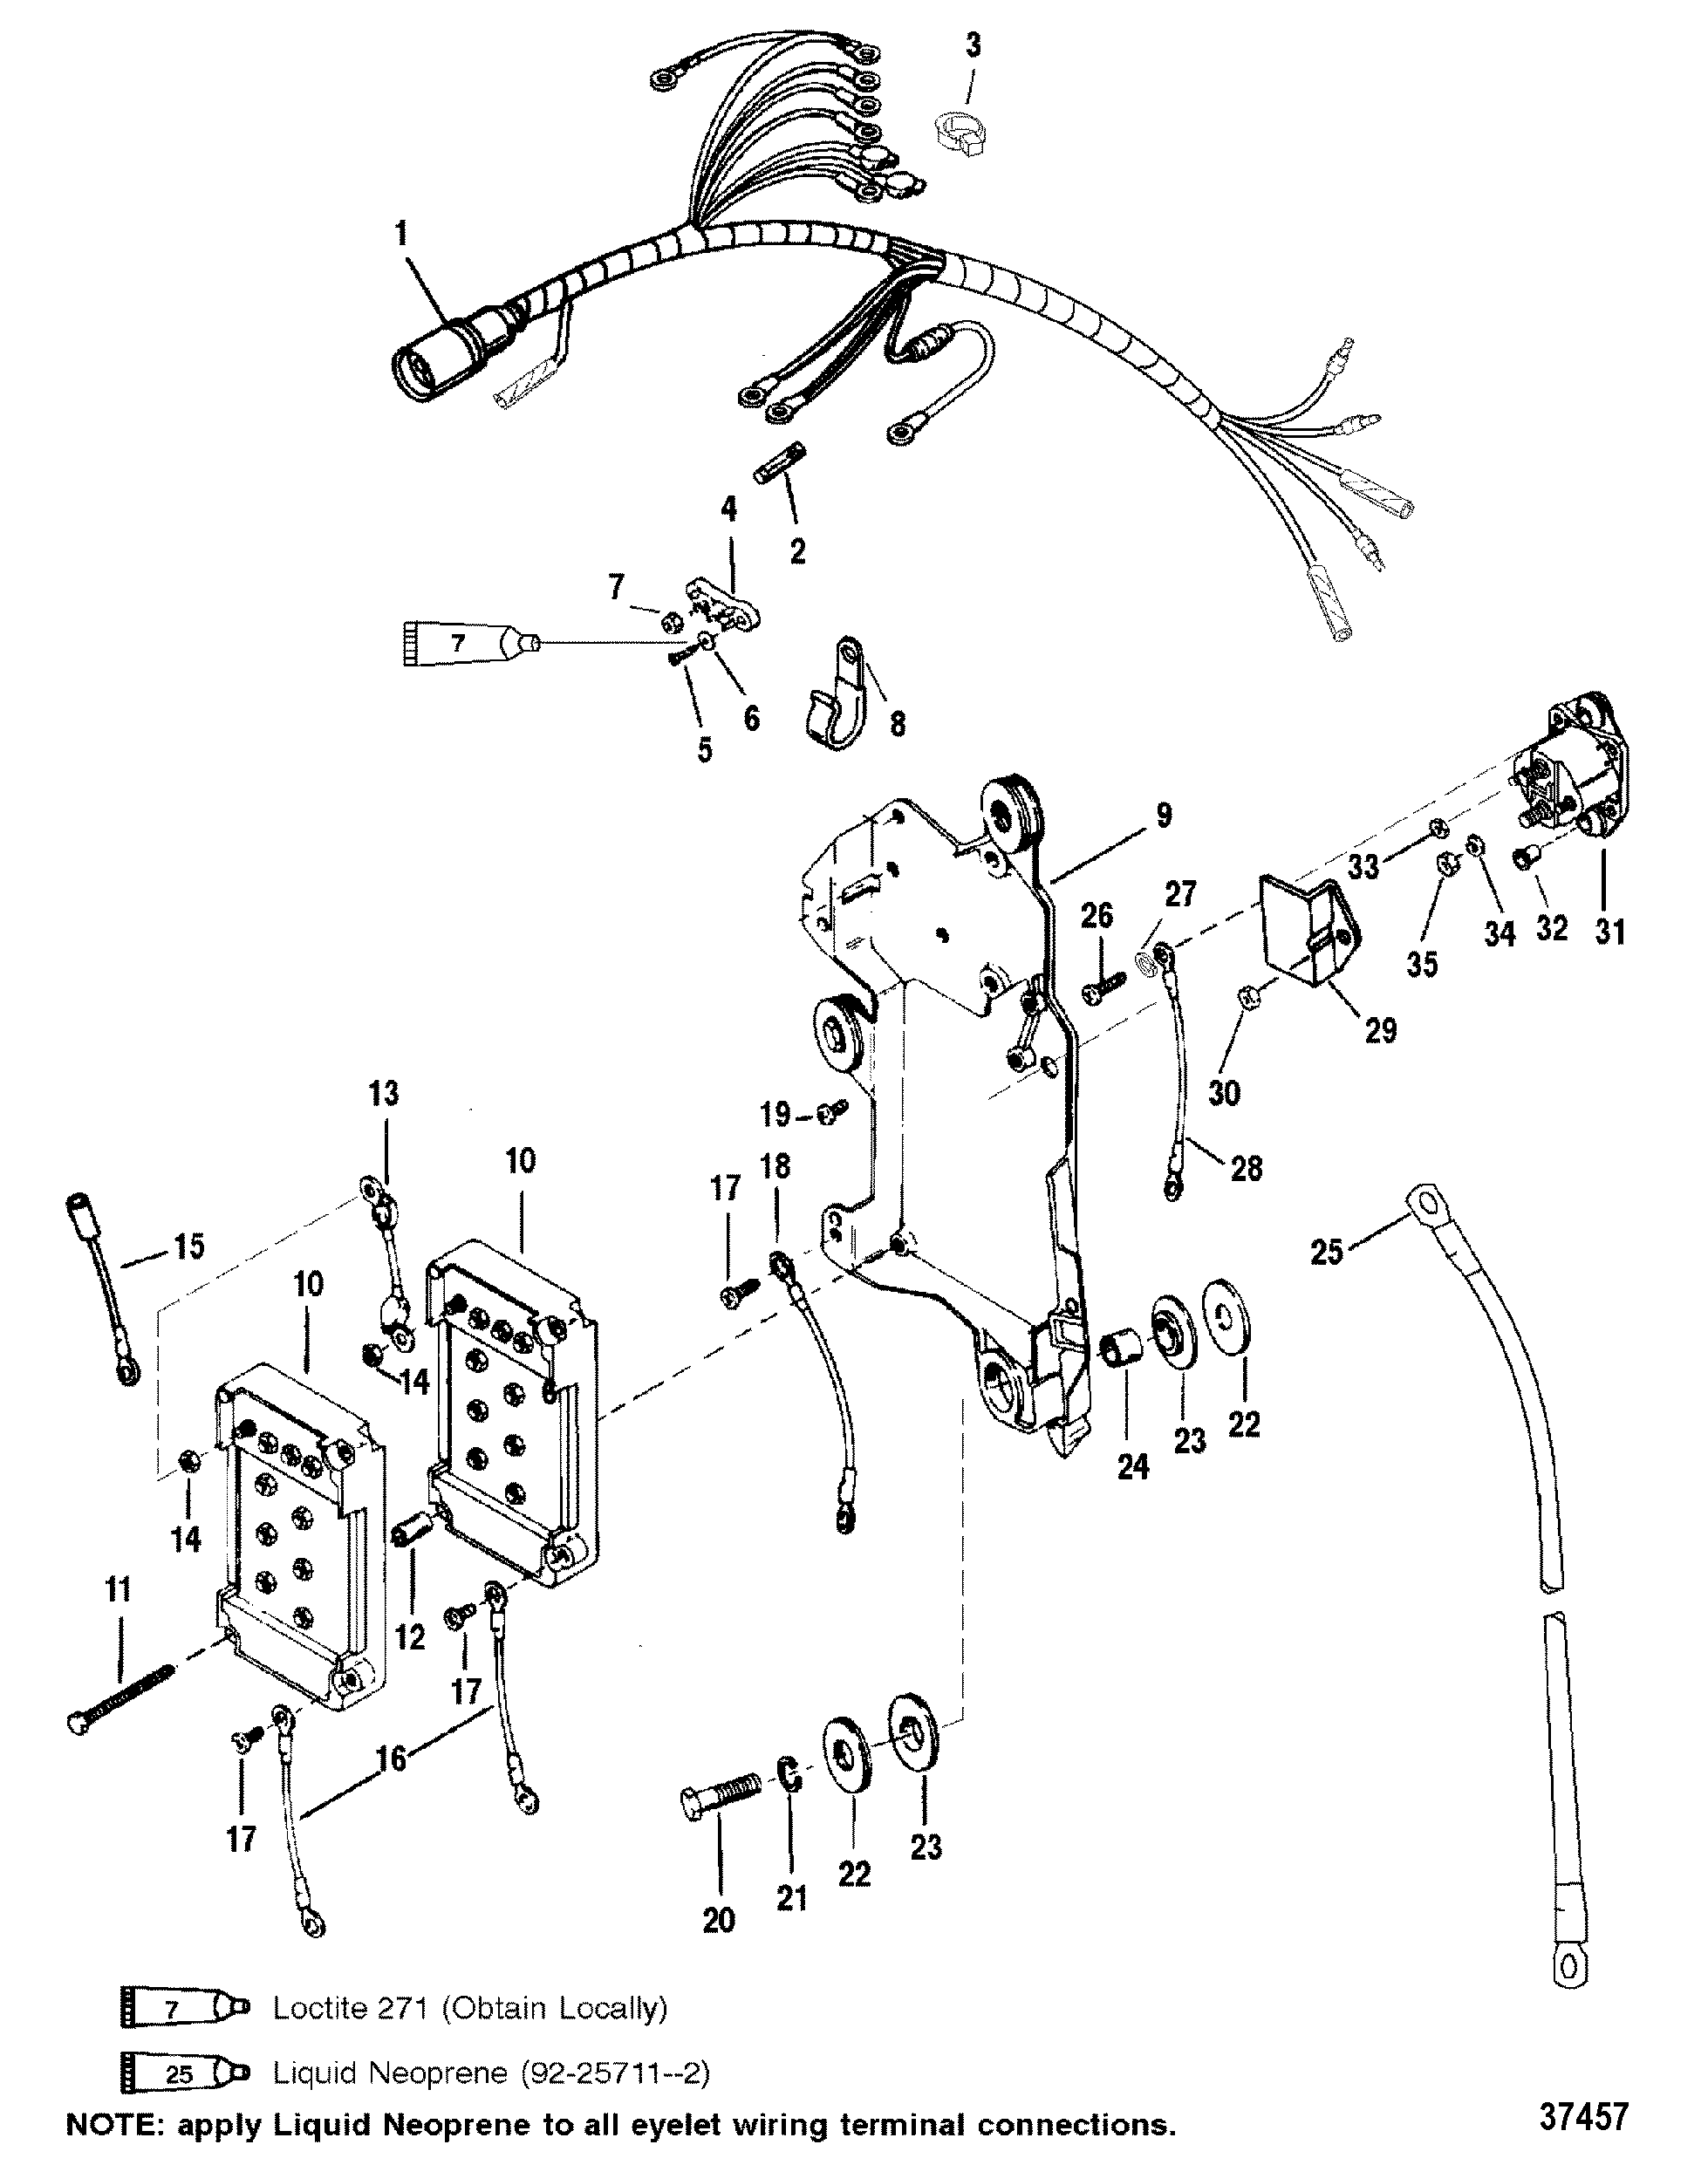 37457 wiring harness starter solenoid for mariner mercury 150 175 200 efi mercury 14 pin wiring harness diagram at alyssarenee.co